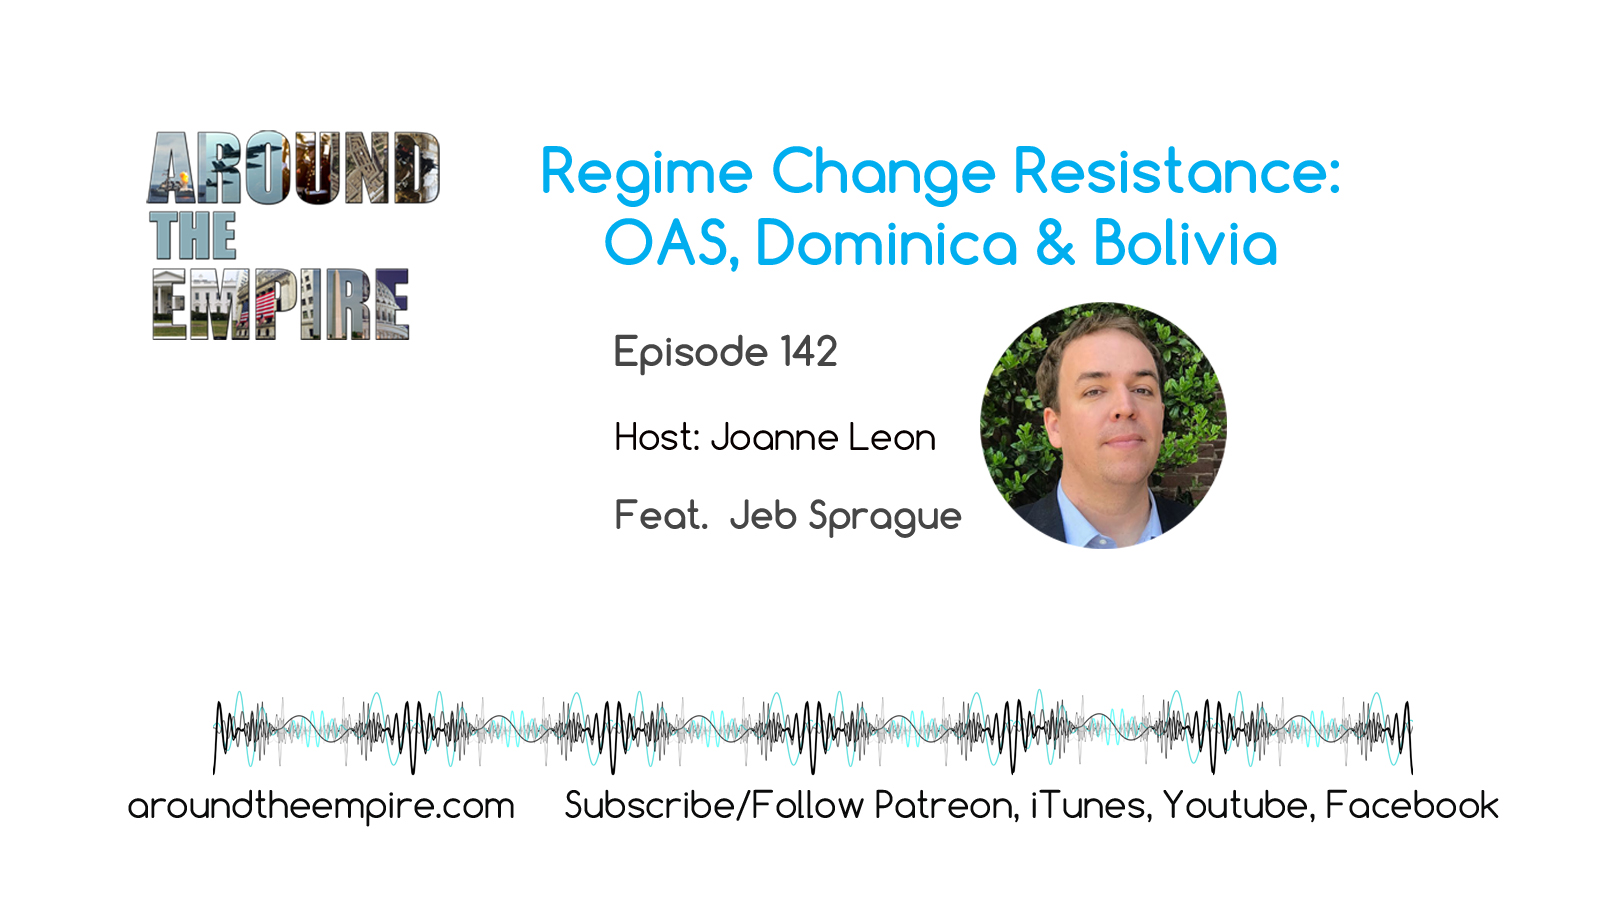 Ep 142 Regime Change Resistance: OAS Bolivia Dominica feat Jeb Sprague